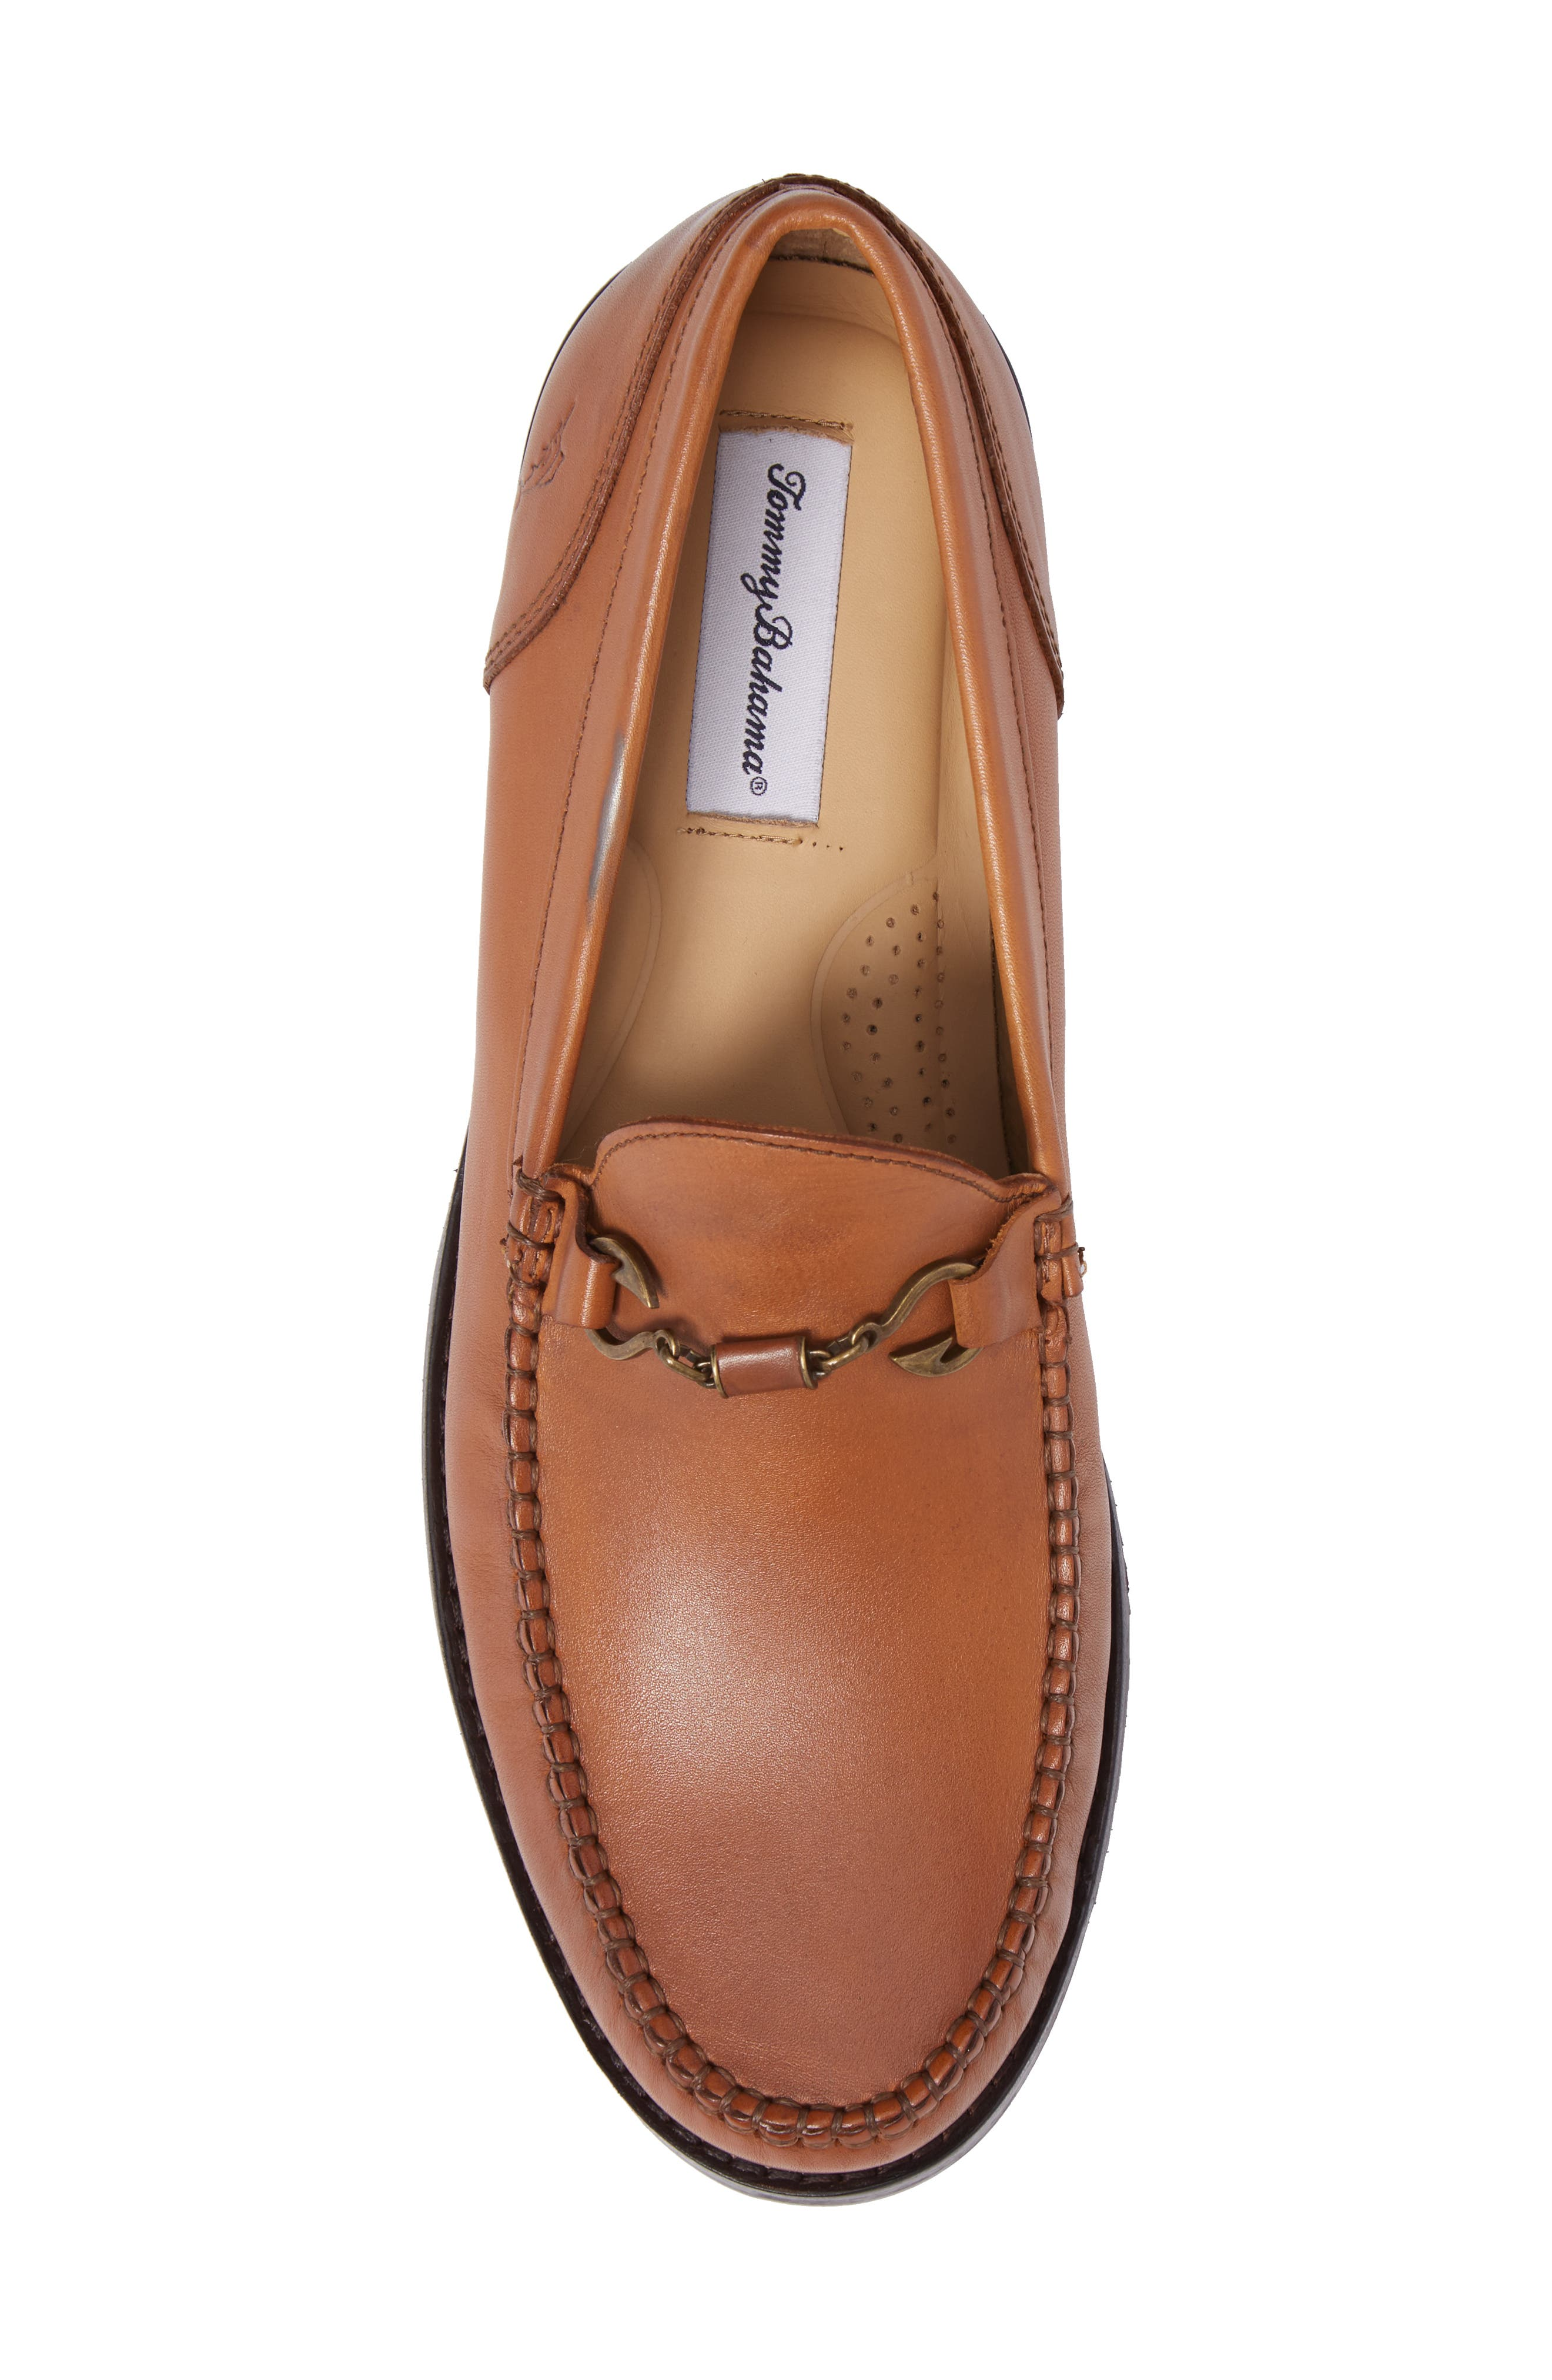 Maya Bay Bit Loafer,                             Alternate thumbnail 5, color,                             TAN LEATHER